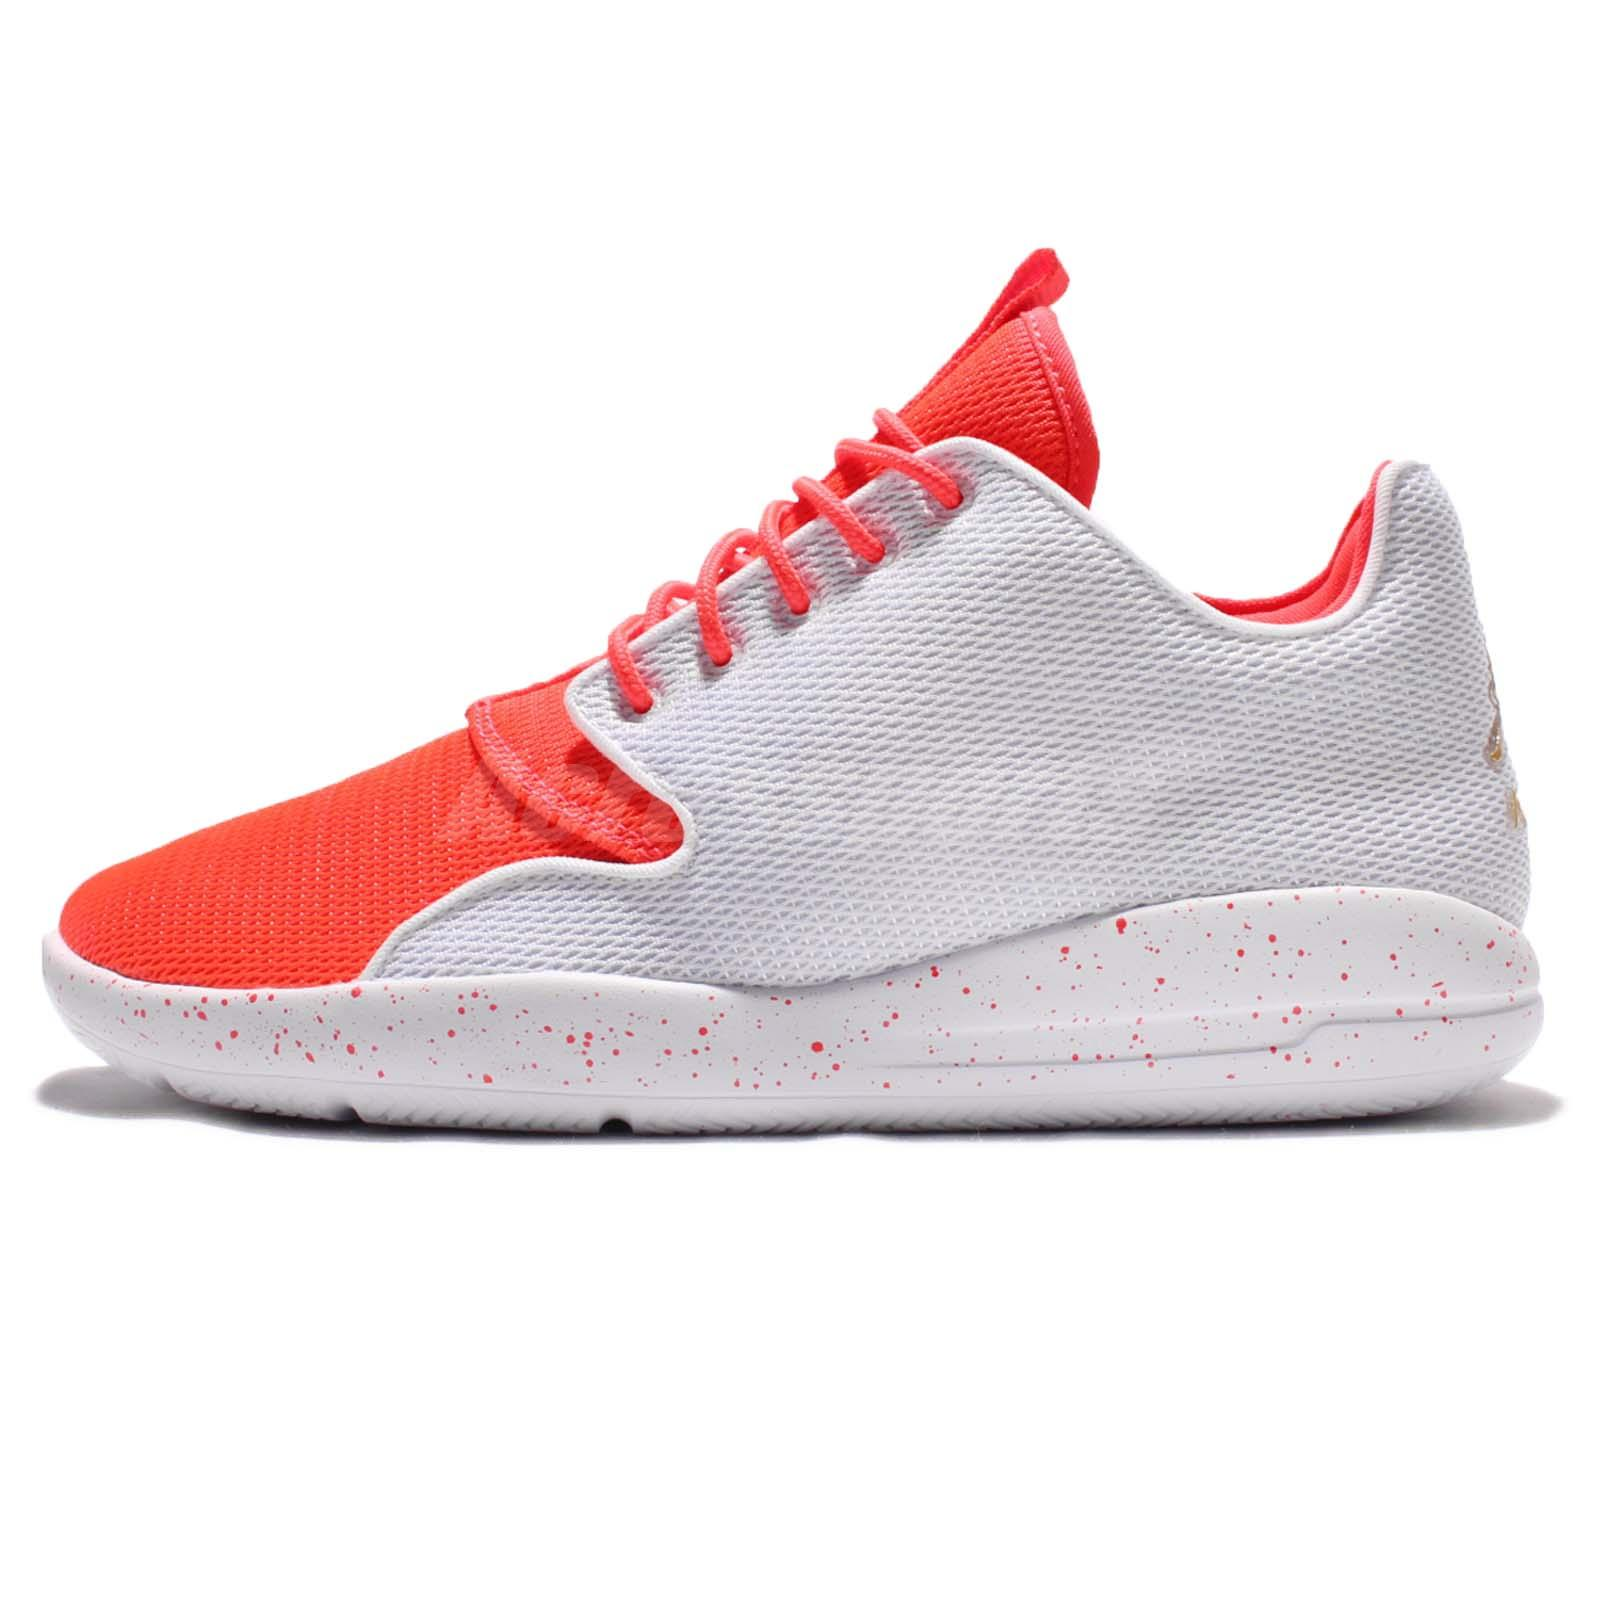 Nike Air Jordan Eclipse White Infrared 23 Mens Running Shoes Sneakers 724010 -126 1d27eb945